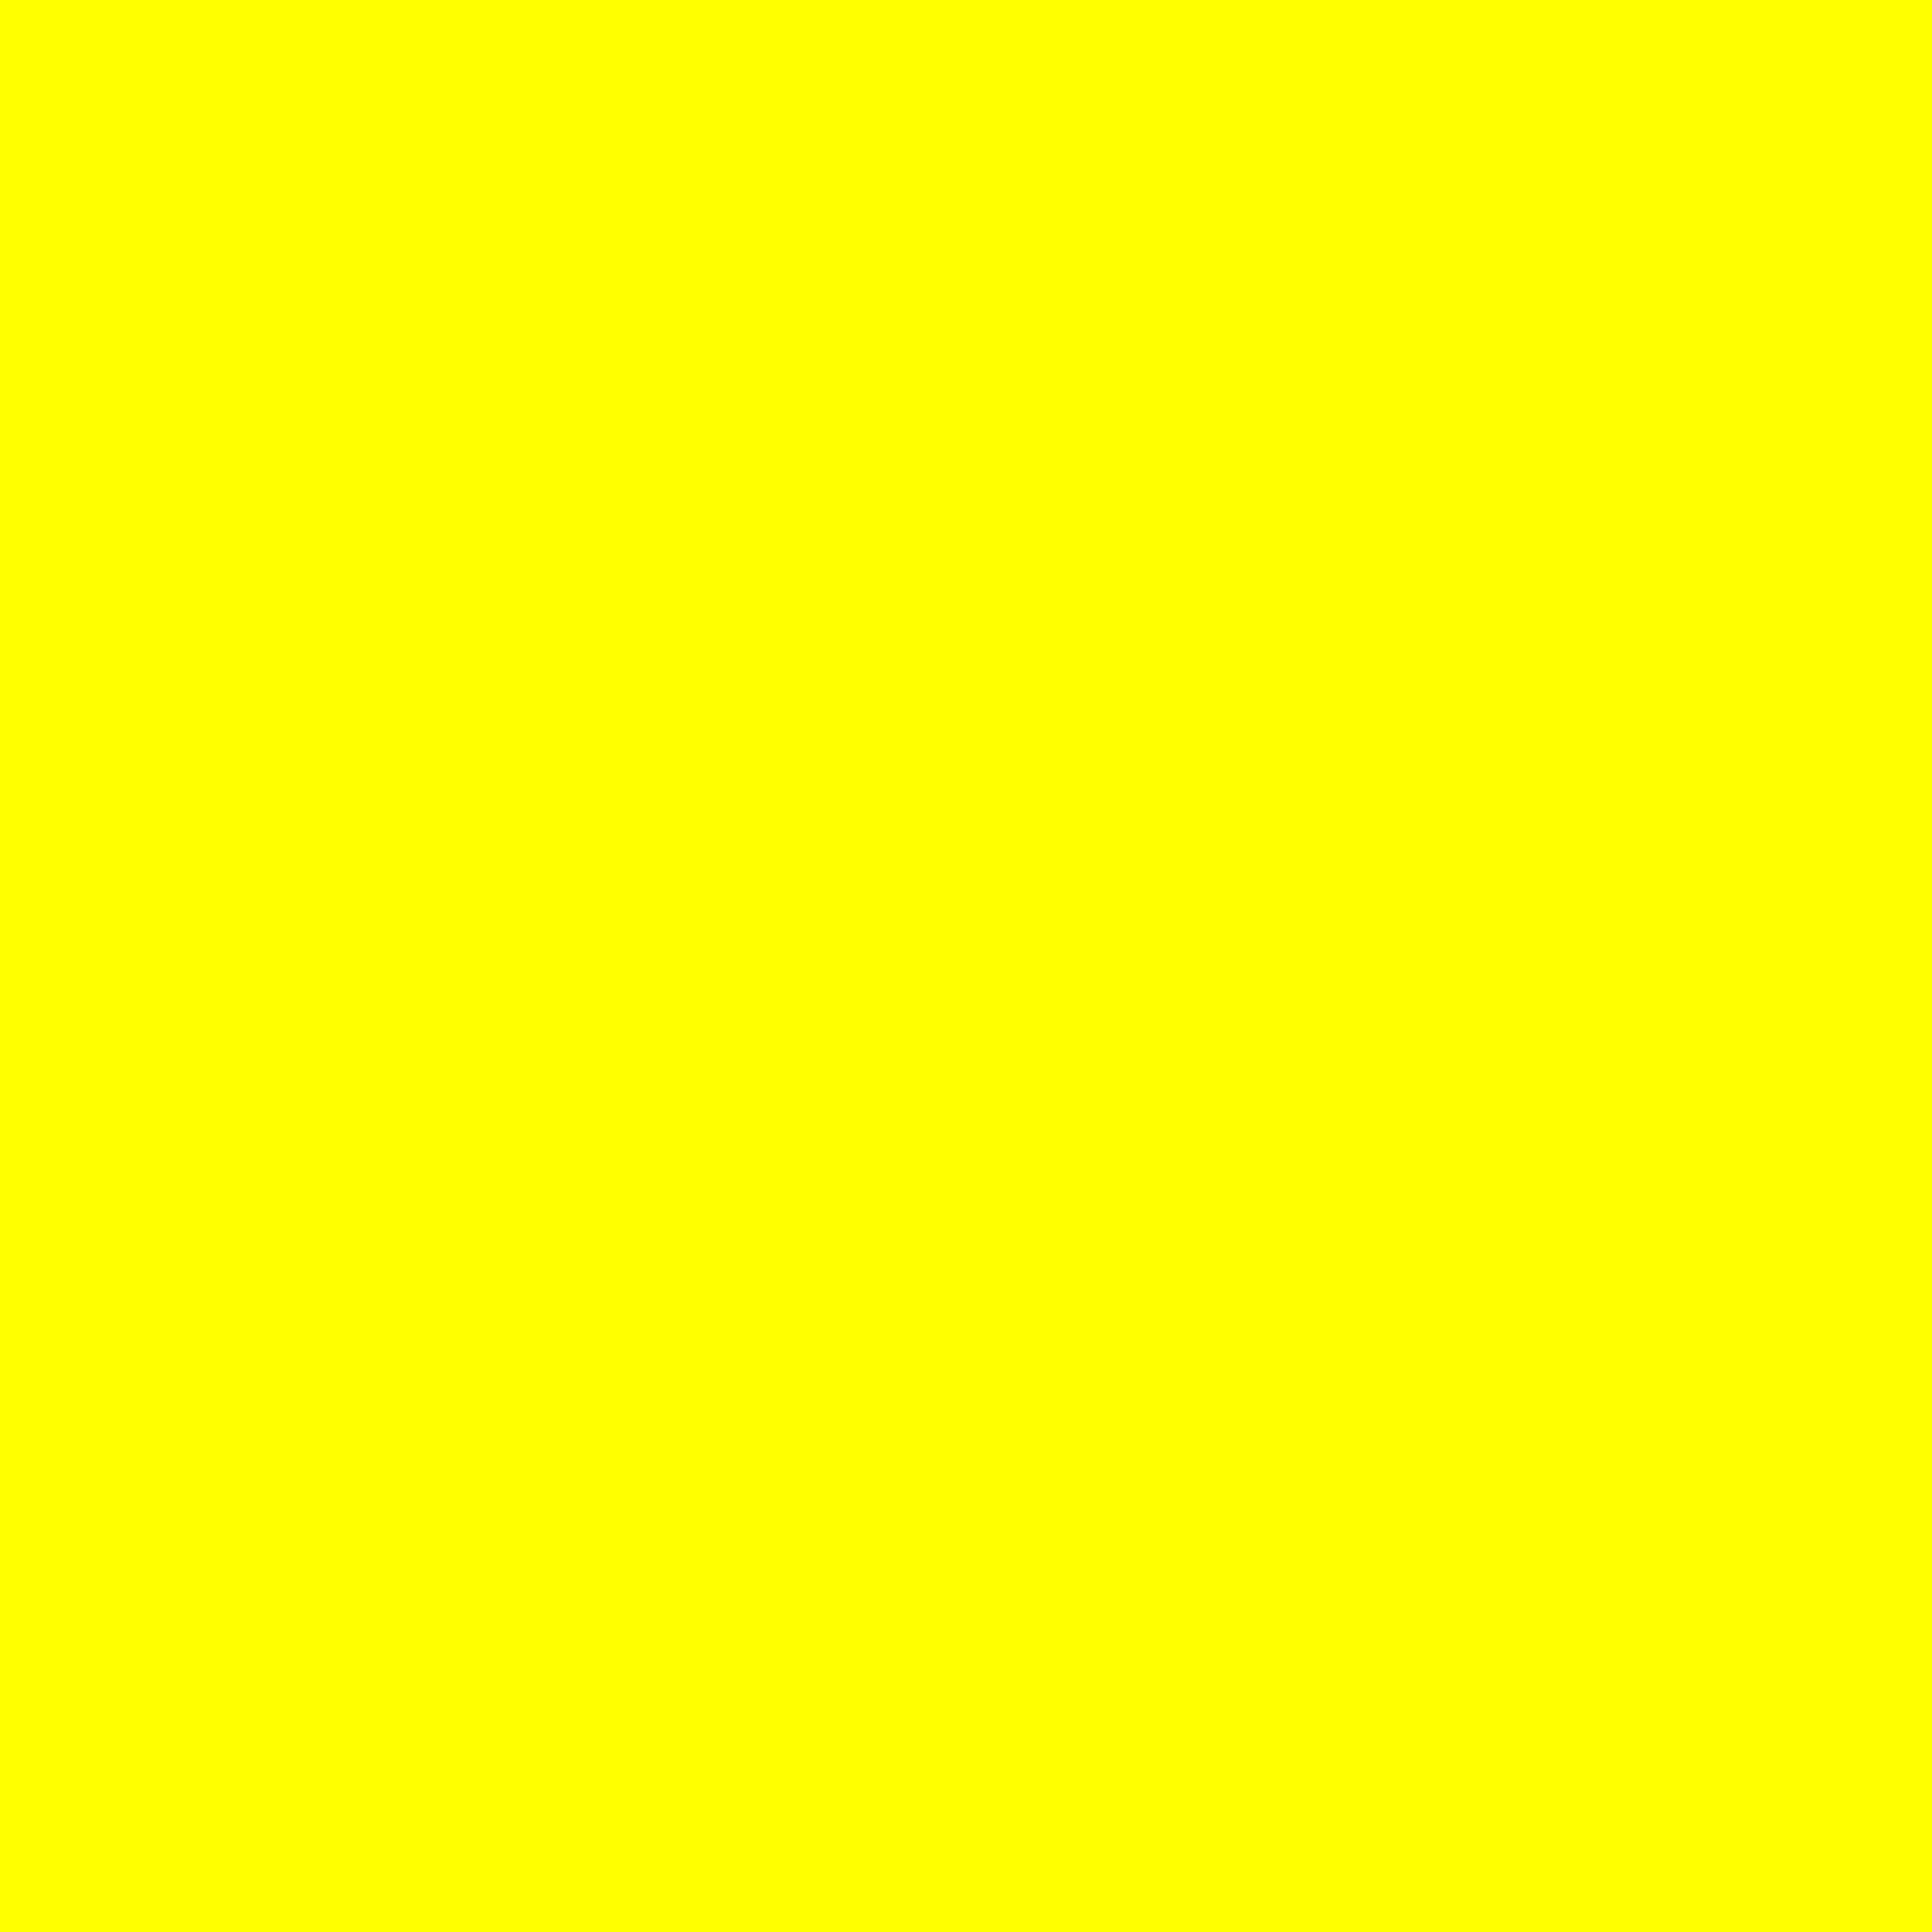 2732x2732 Yellow Solid Color Background